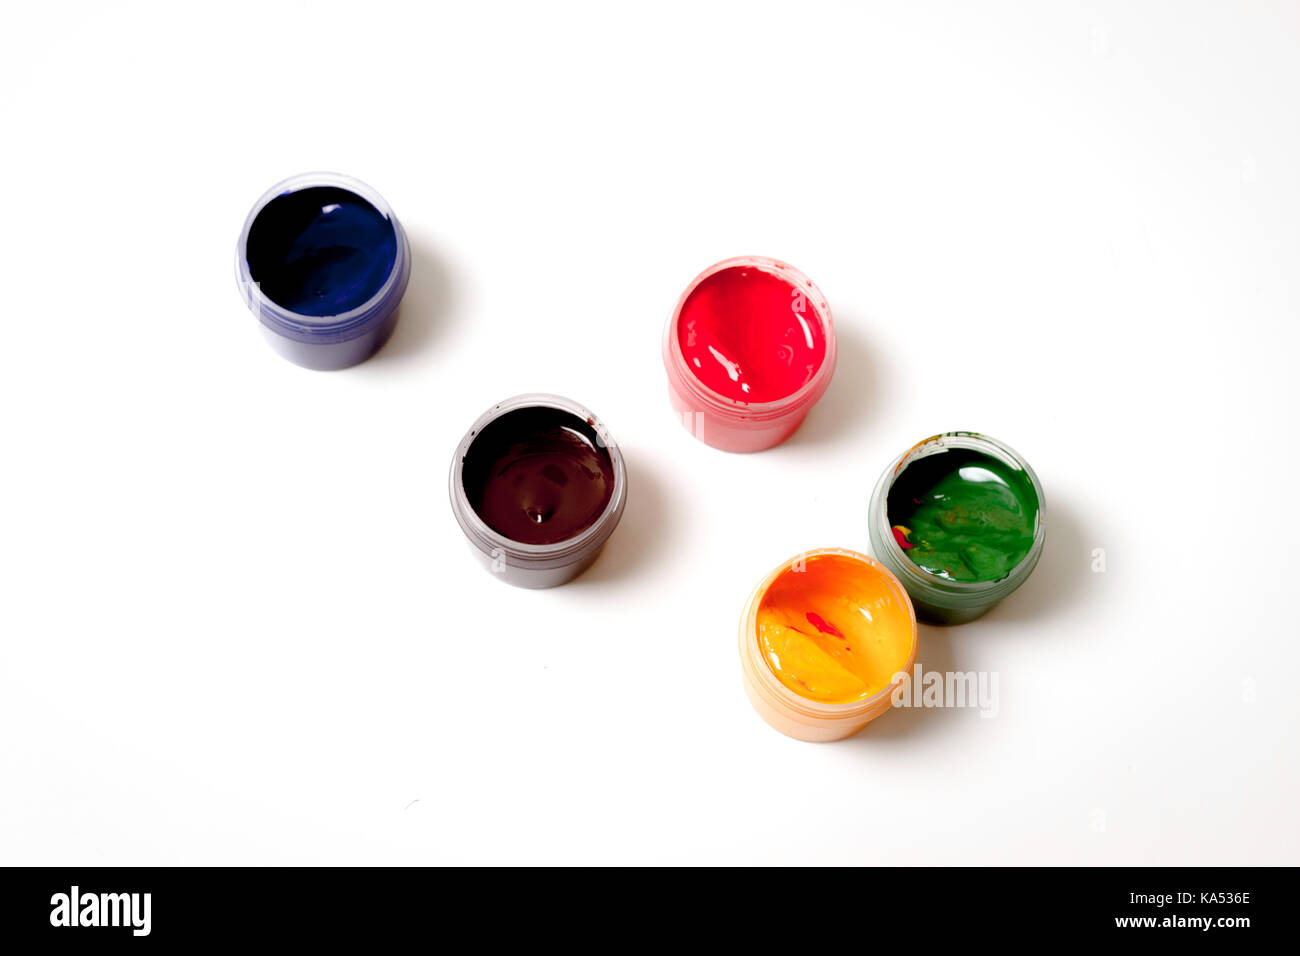 Color gouache jars on white background - Stock Image